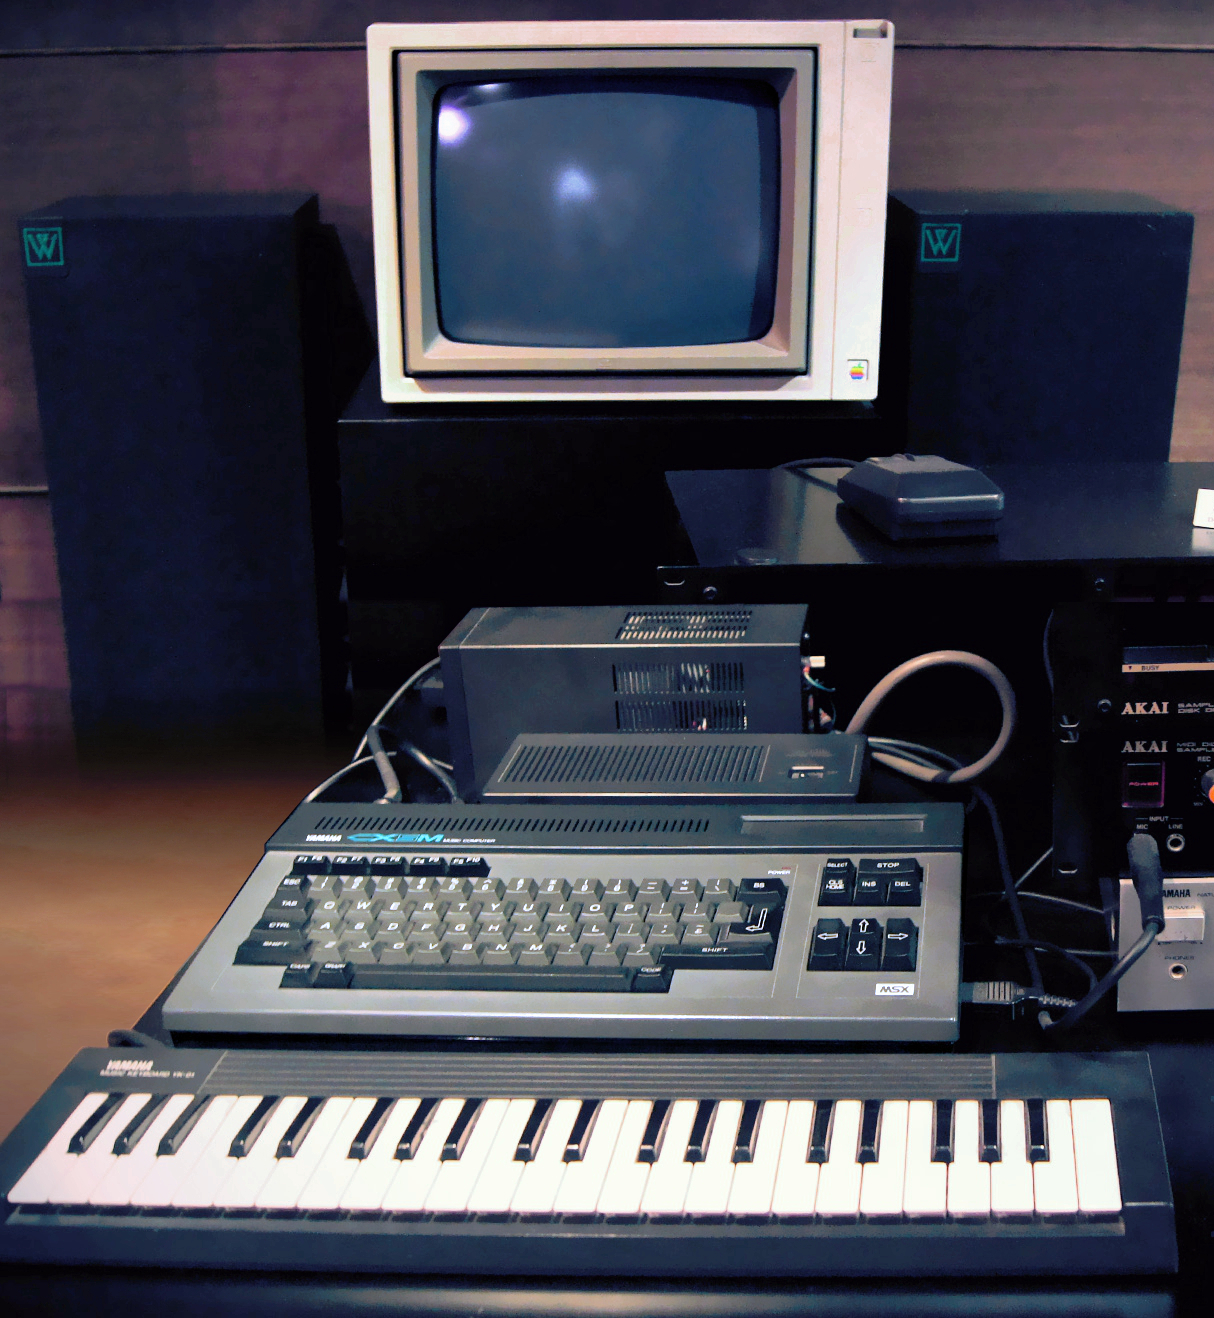 https://upload.wikimedia.org/wikipedia/commons/3/35/Yamaha_CX5M_Music_Computer_set%2C_MIM_Brussels.jpg